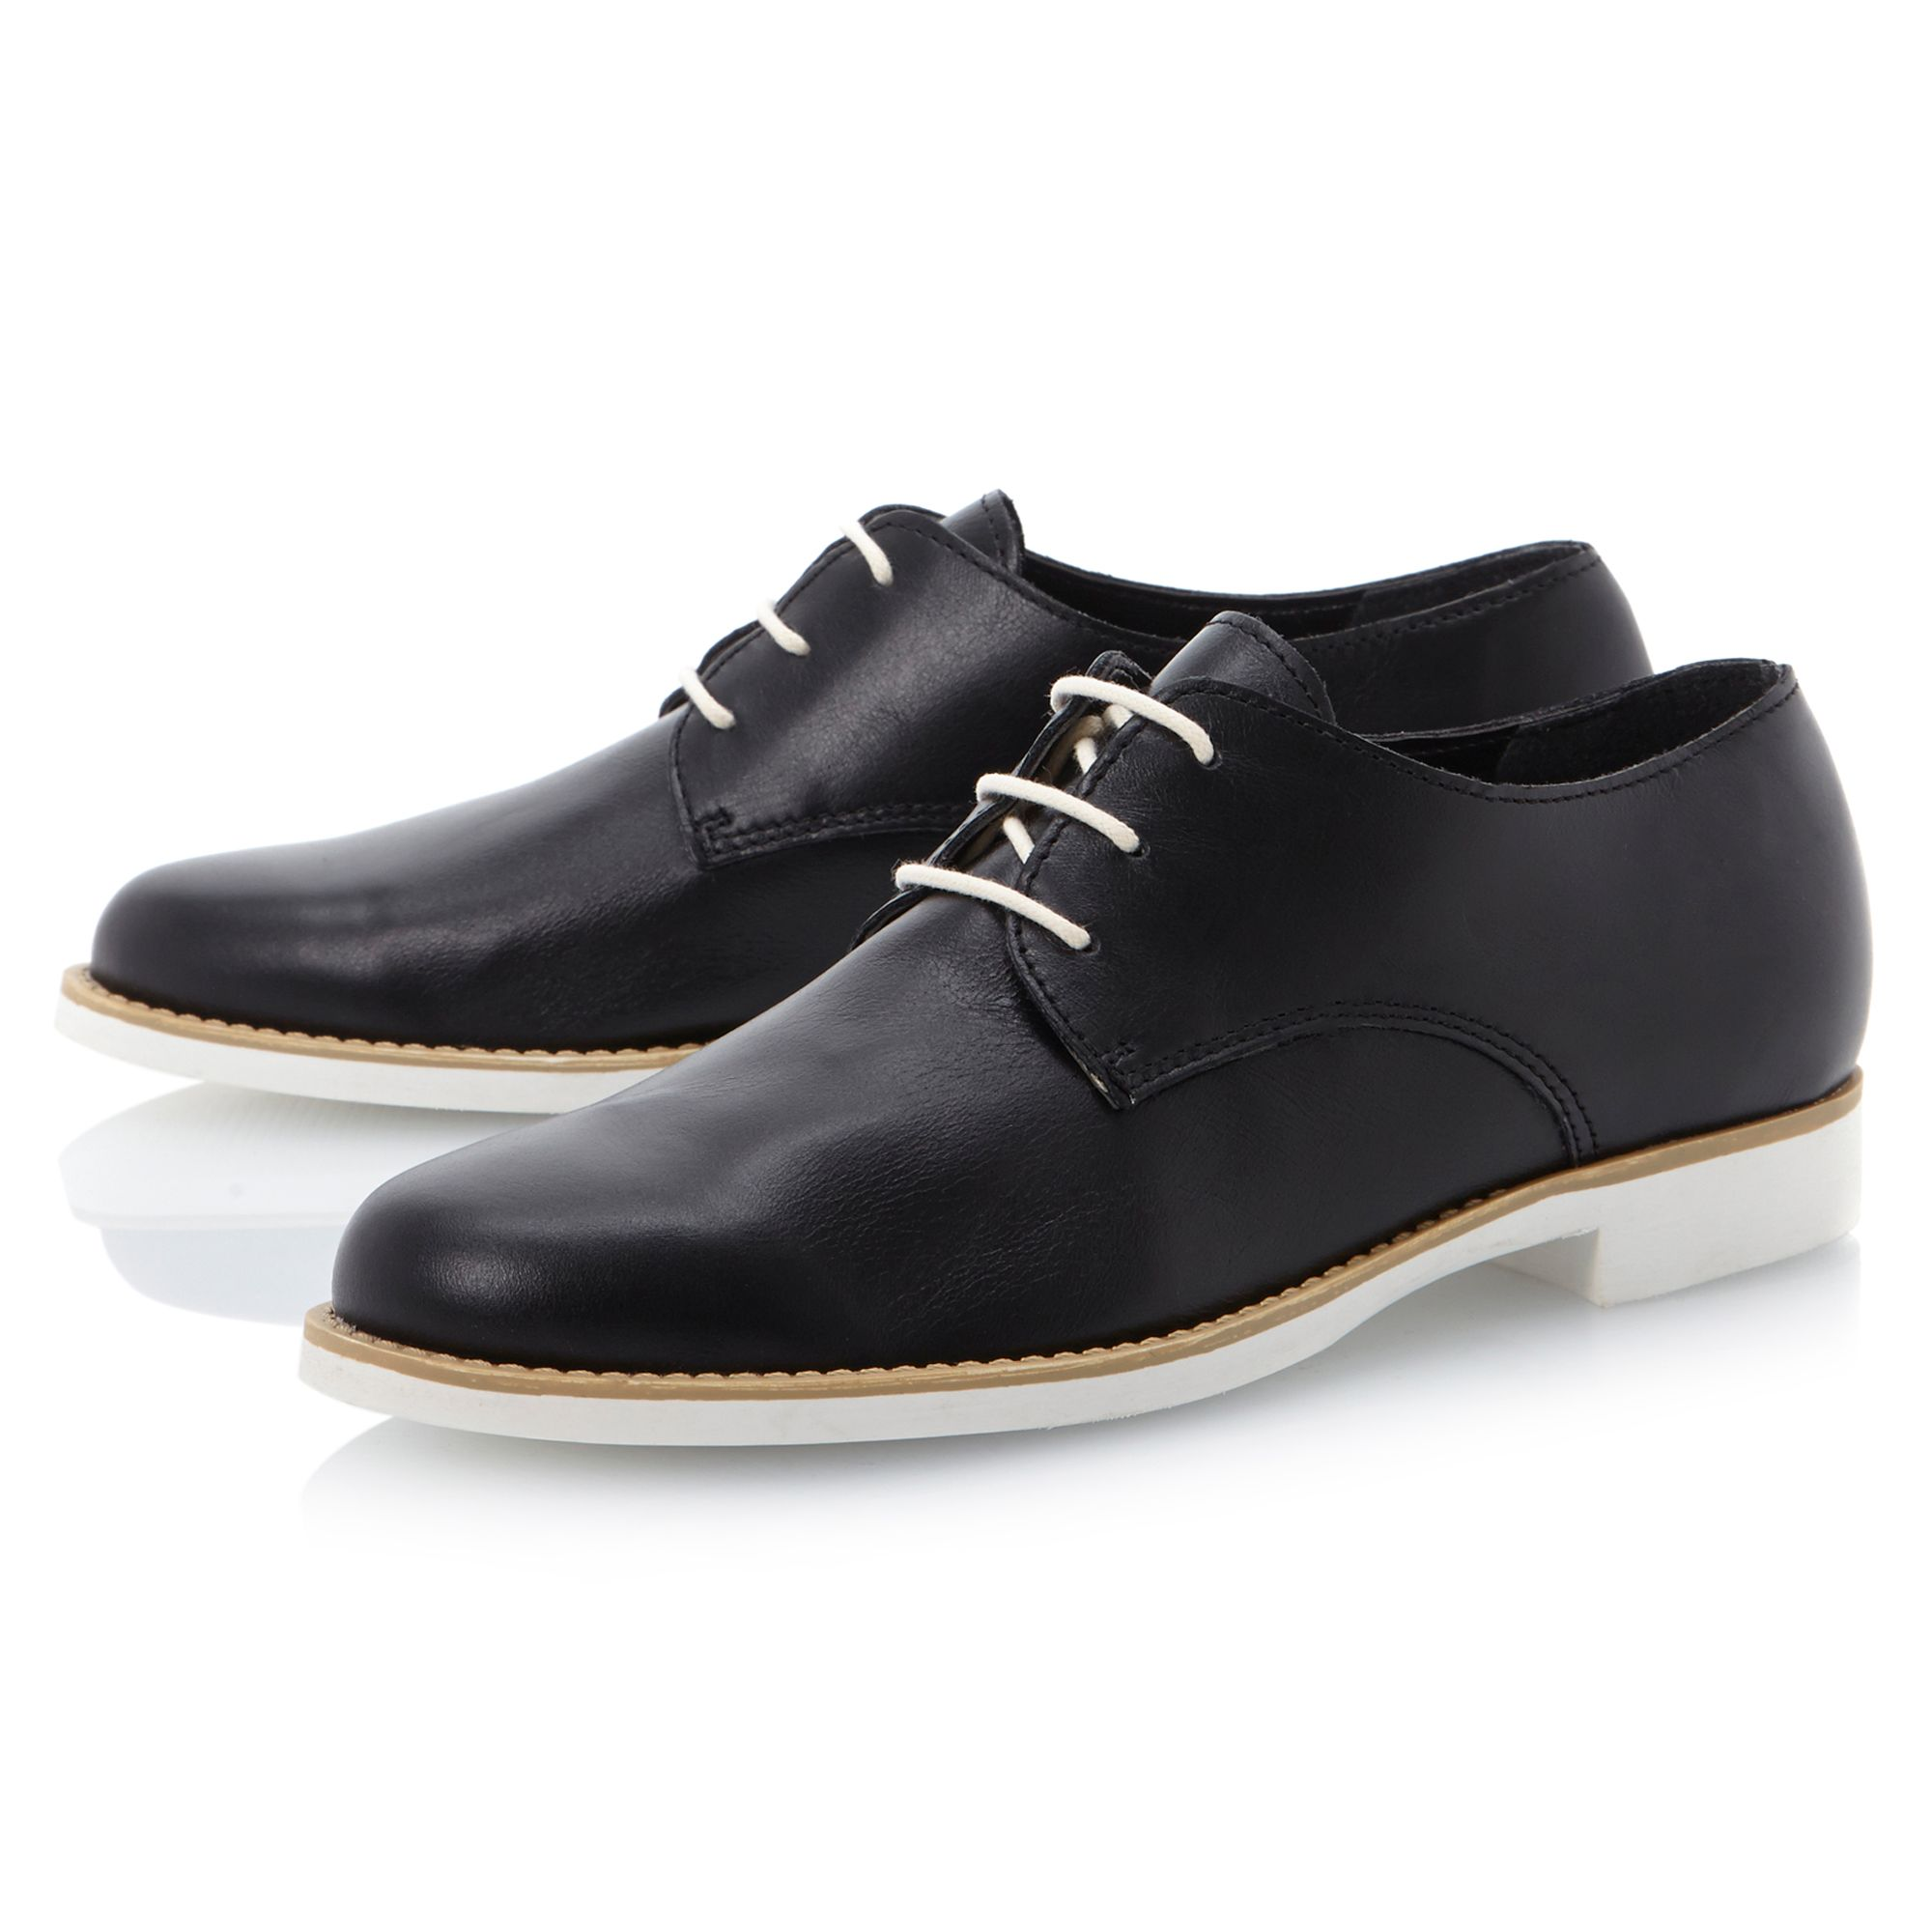 Luca eva sole lace up loafer shoes